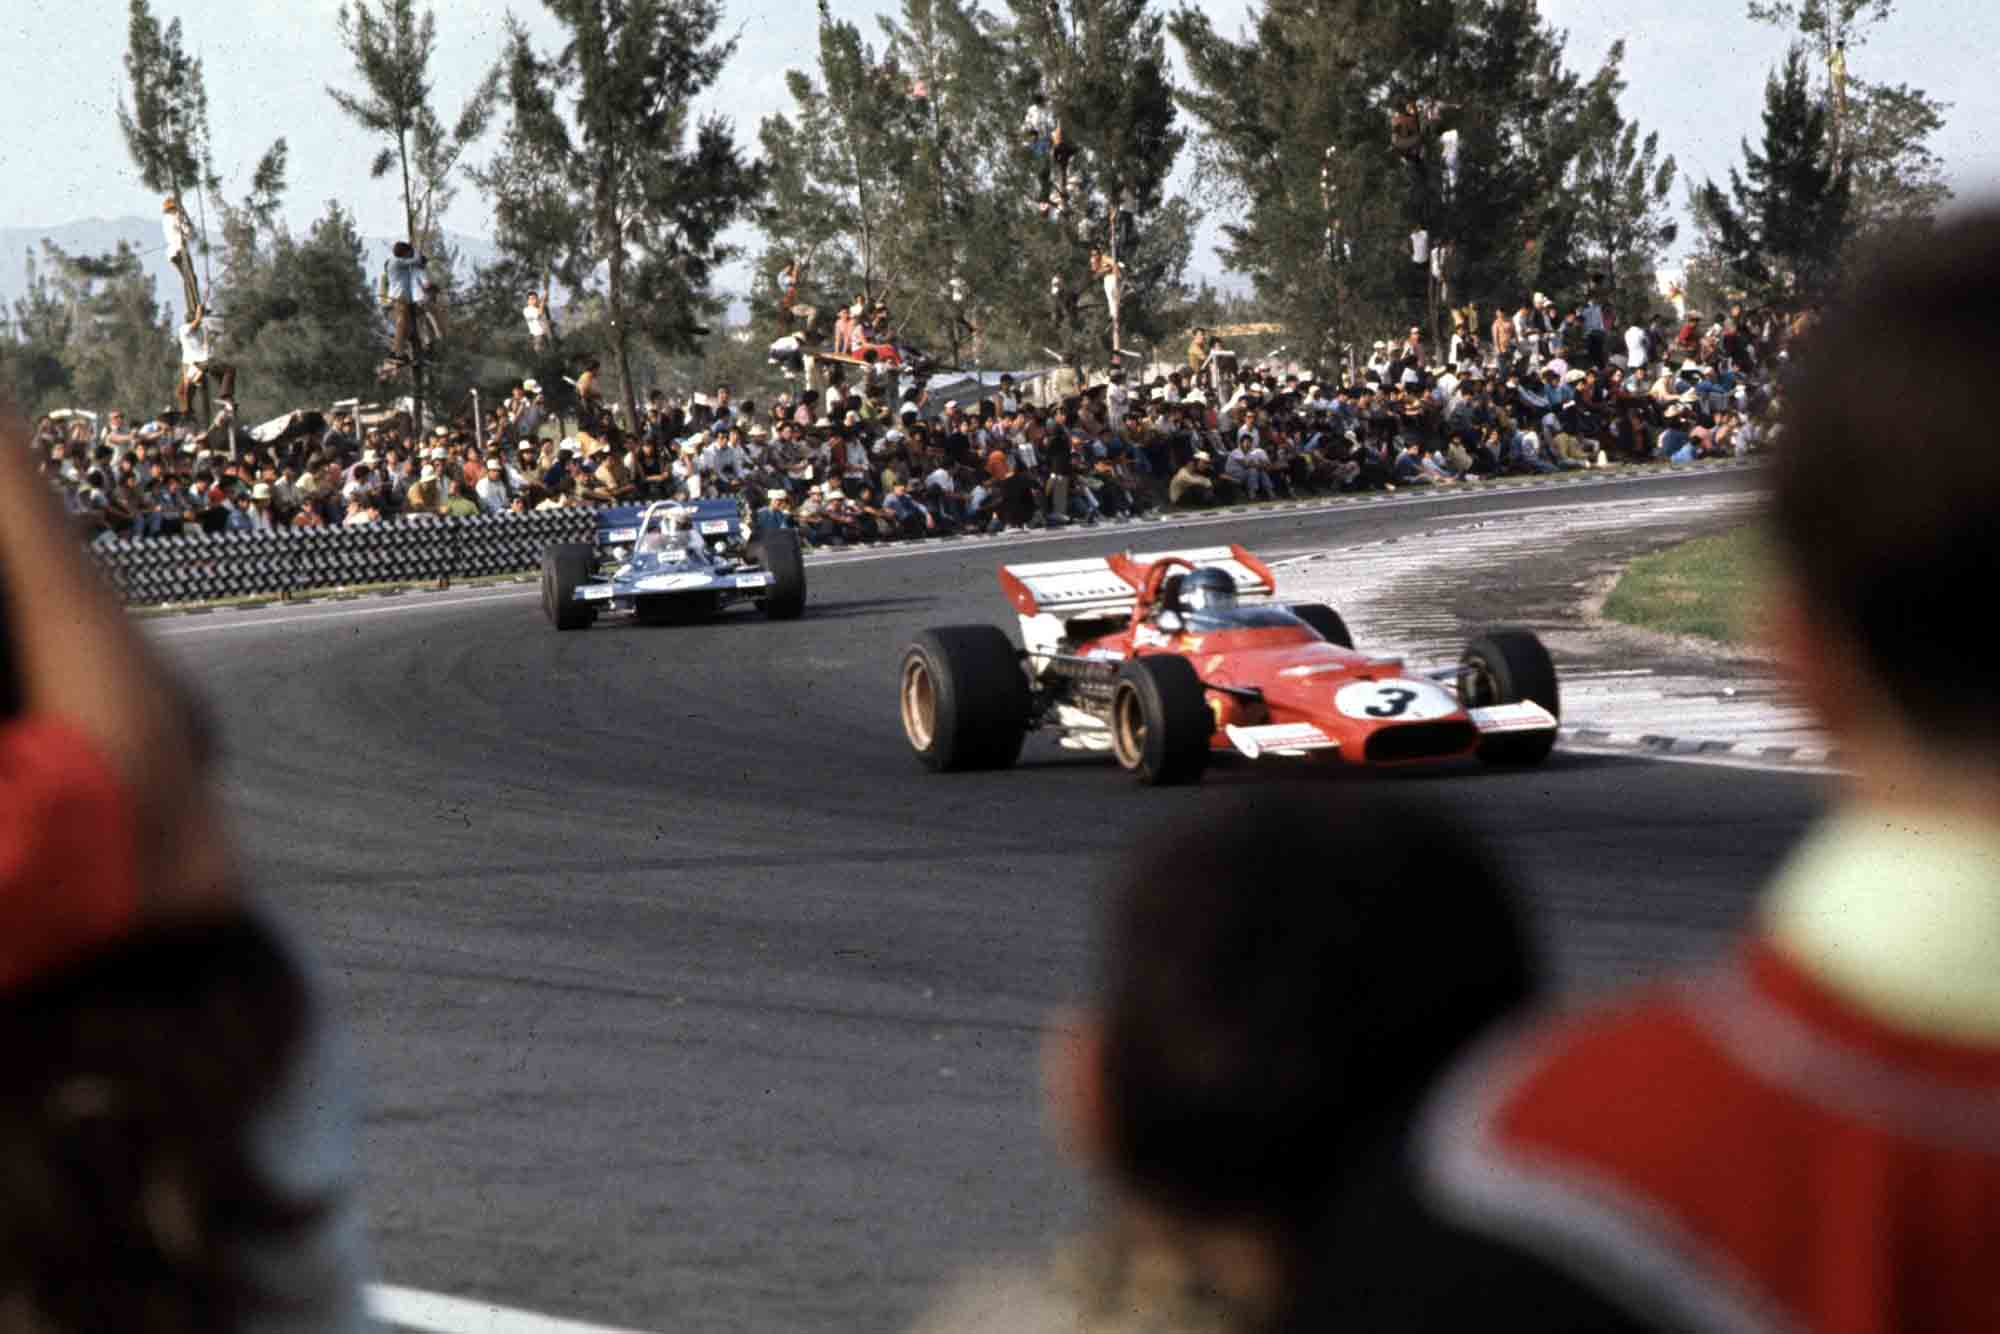 Jacky Ickx is chased by Jackie Stewart at the Mexican Grand Prix, Mexico City, 23-25 Oct 70